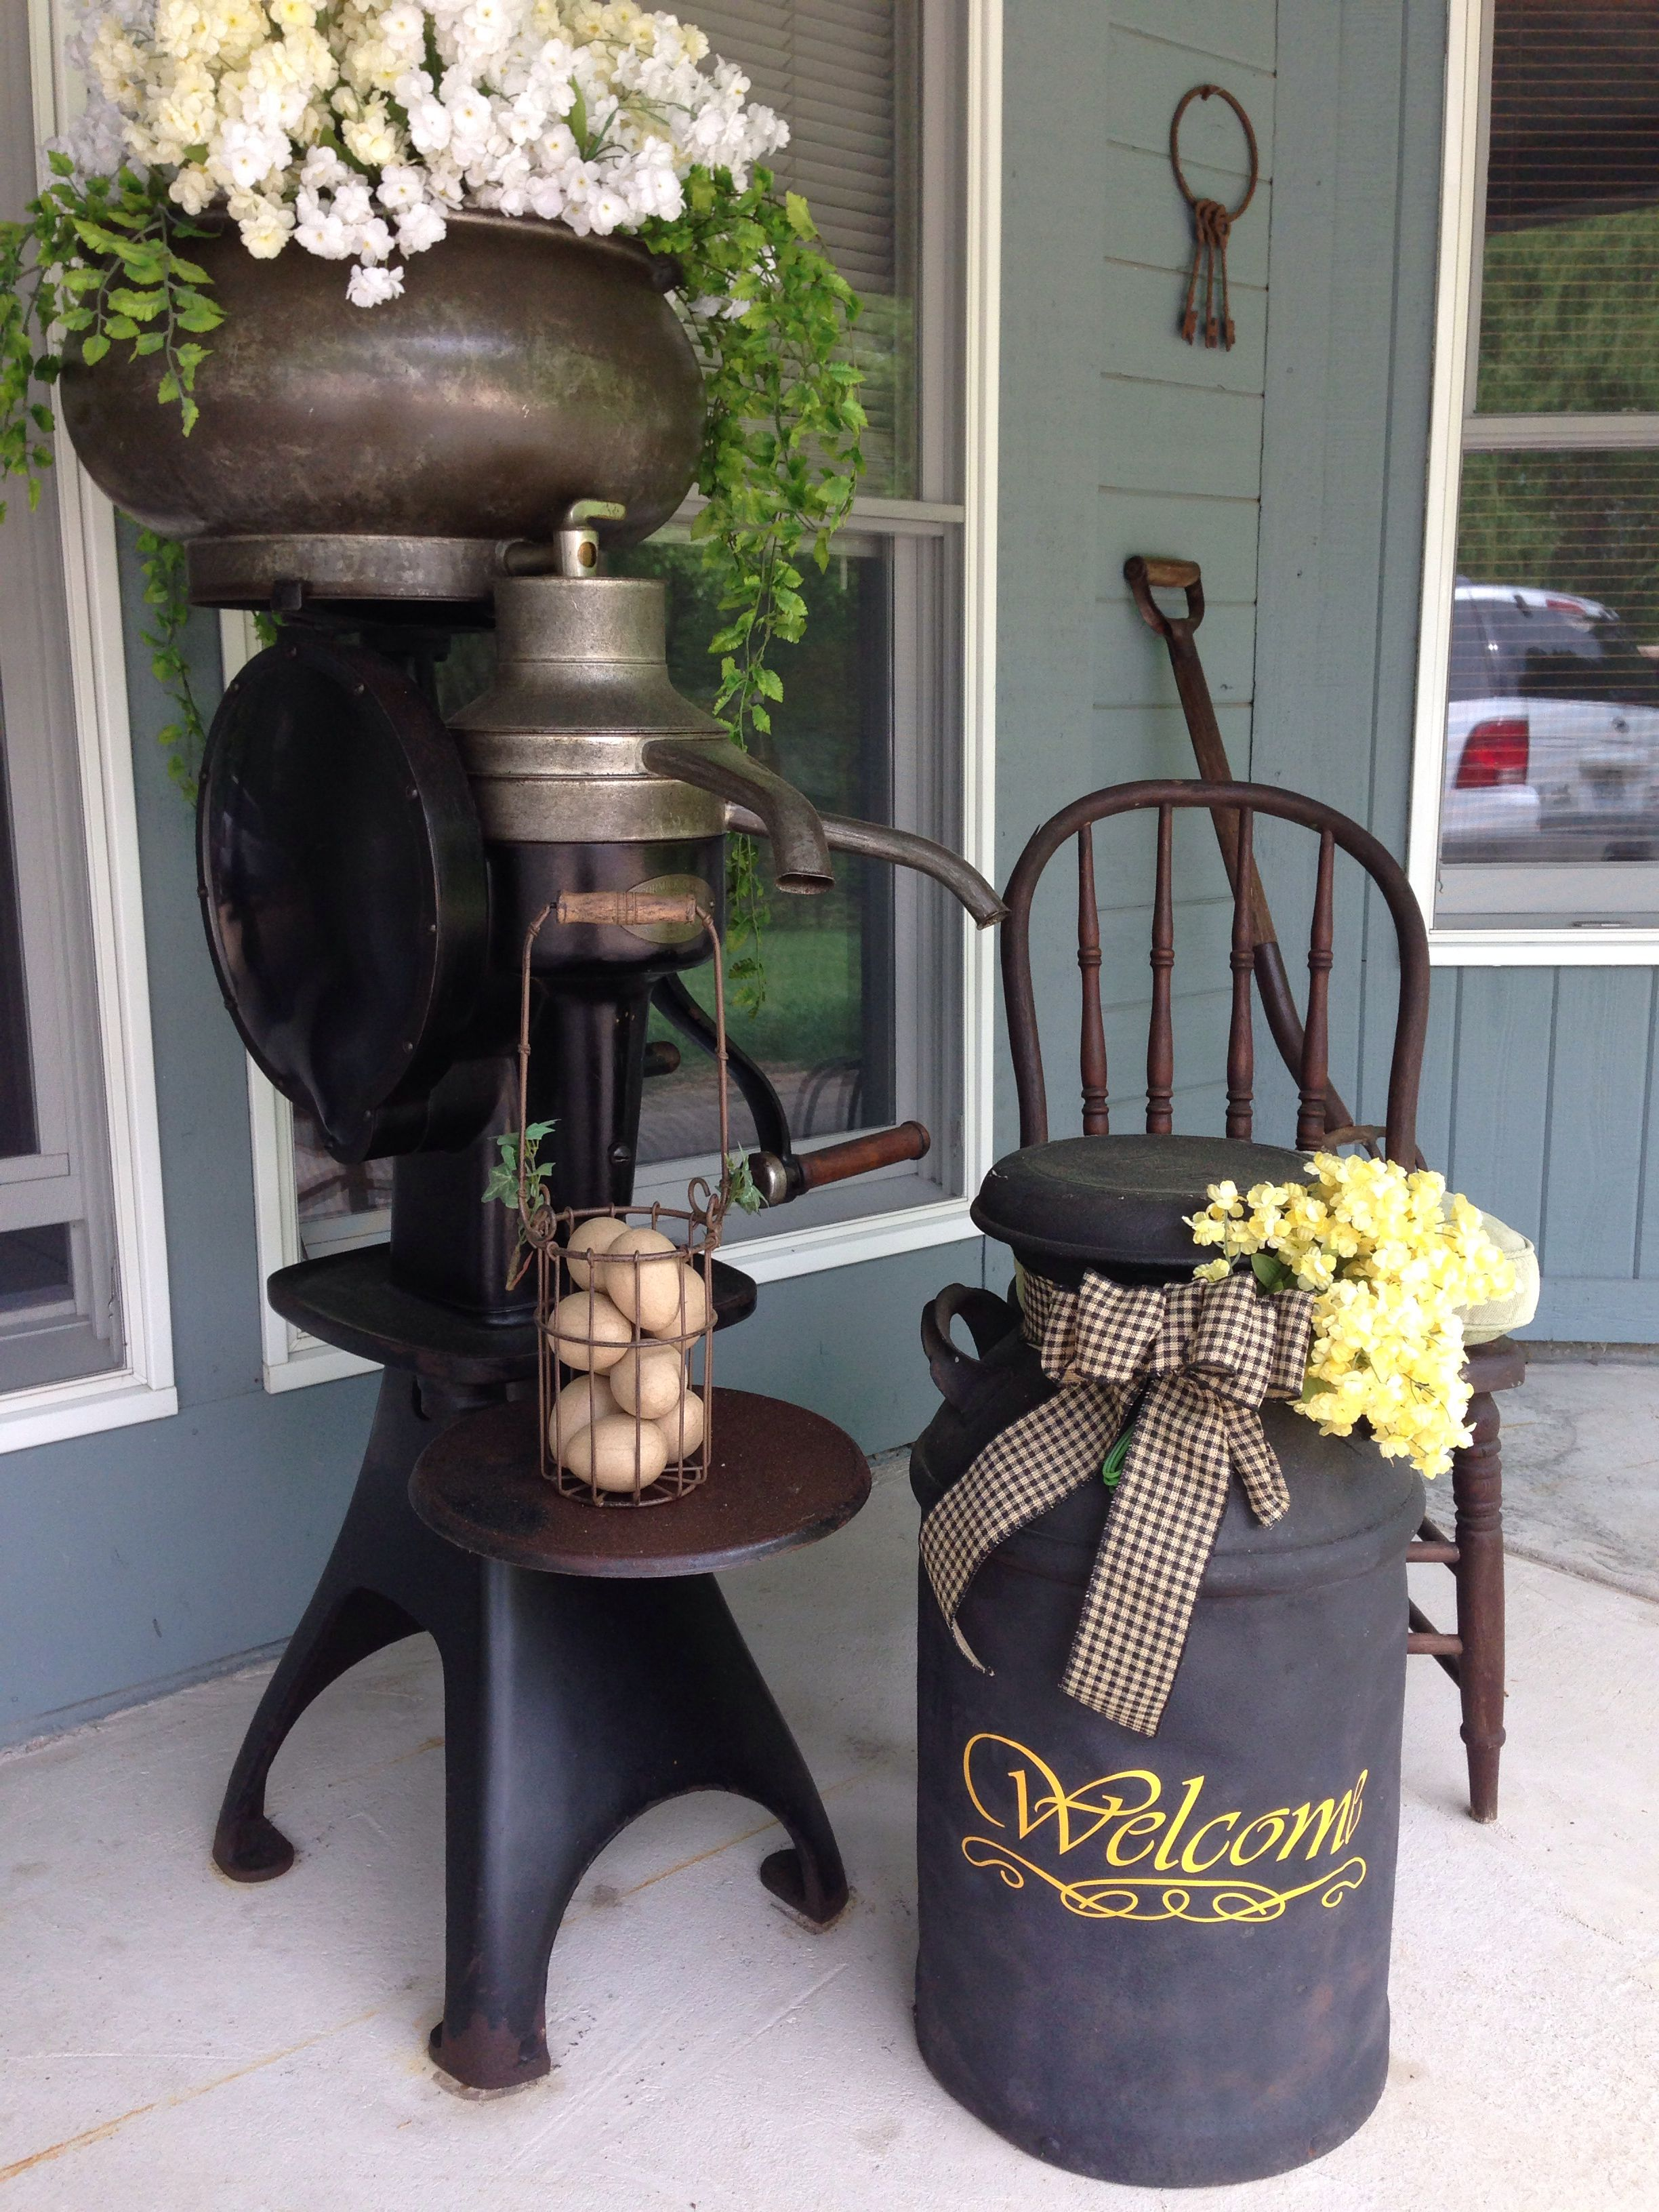 Pin By Debbie Ponder On Front Porch 2014 Painted Milk Cans Milk Can Decor Farm Decor